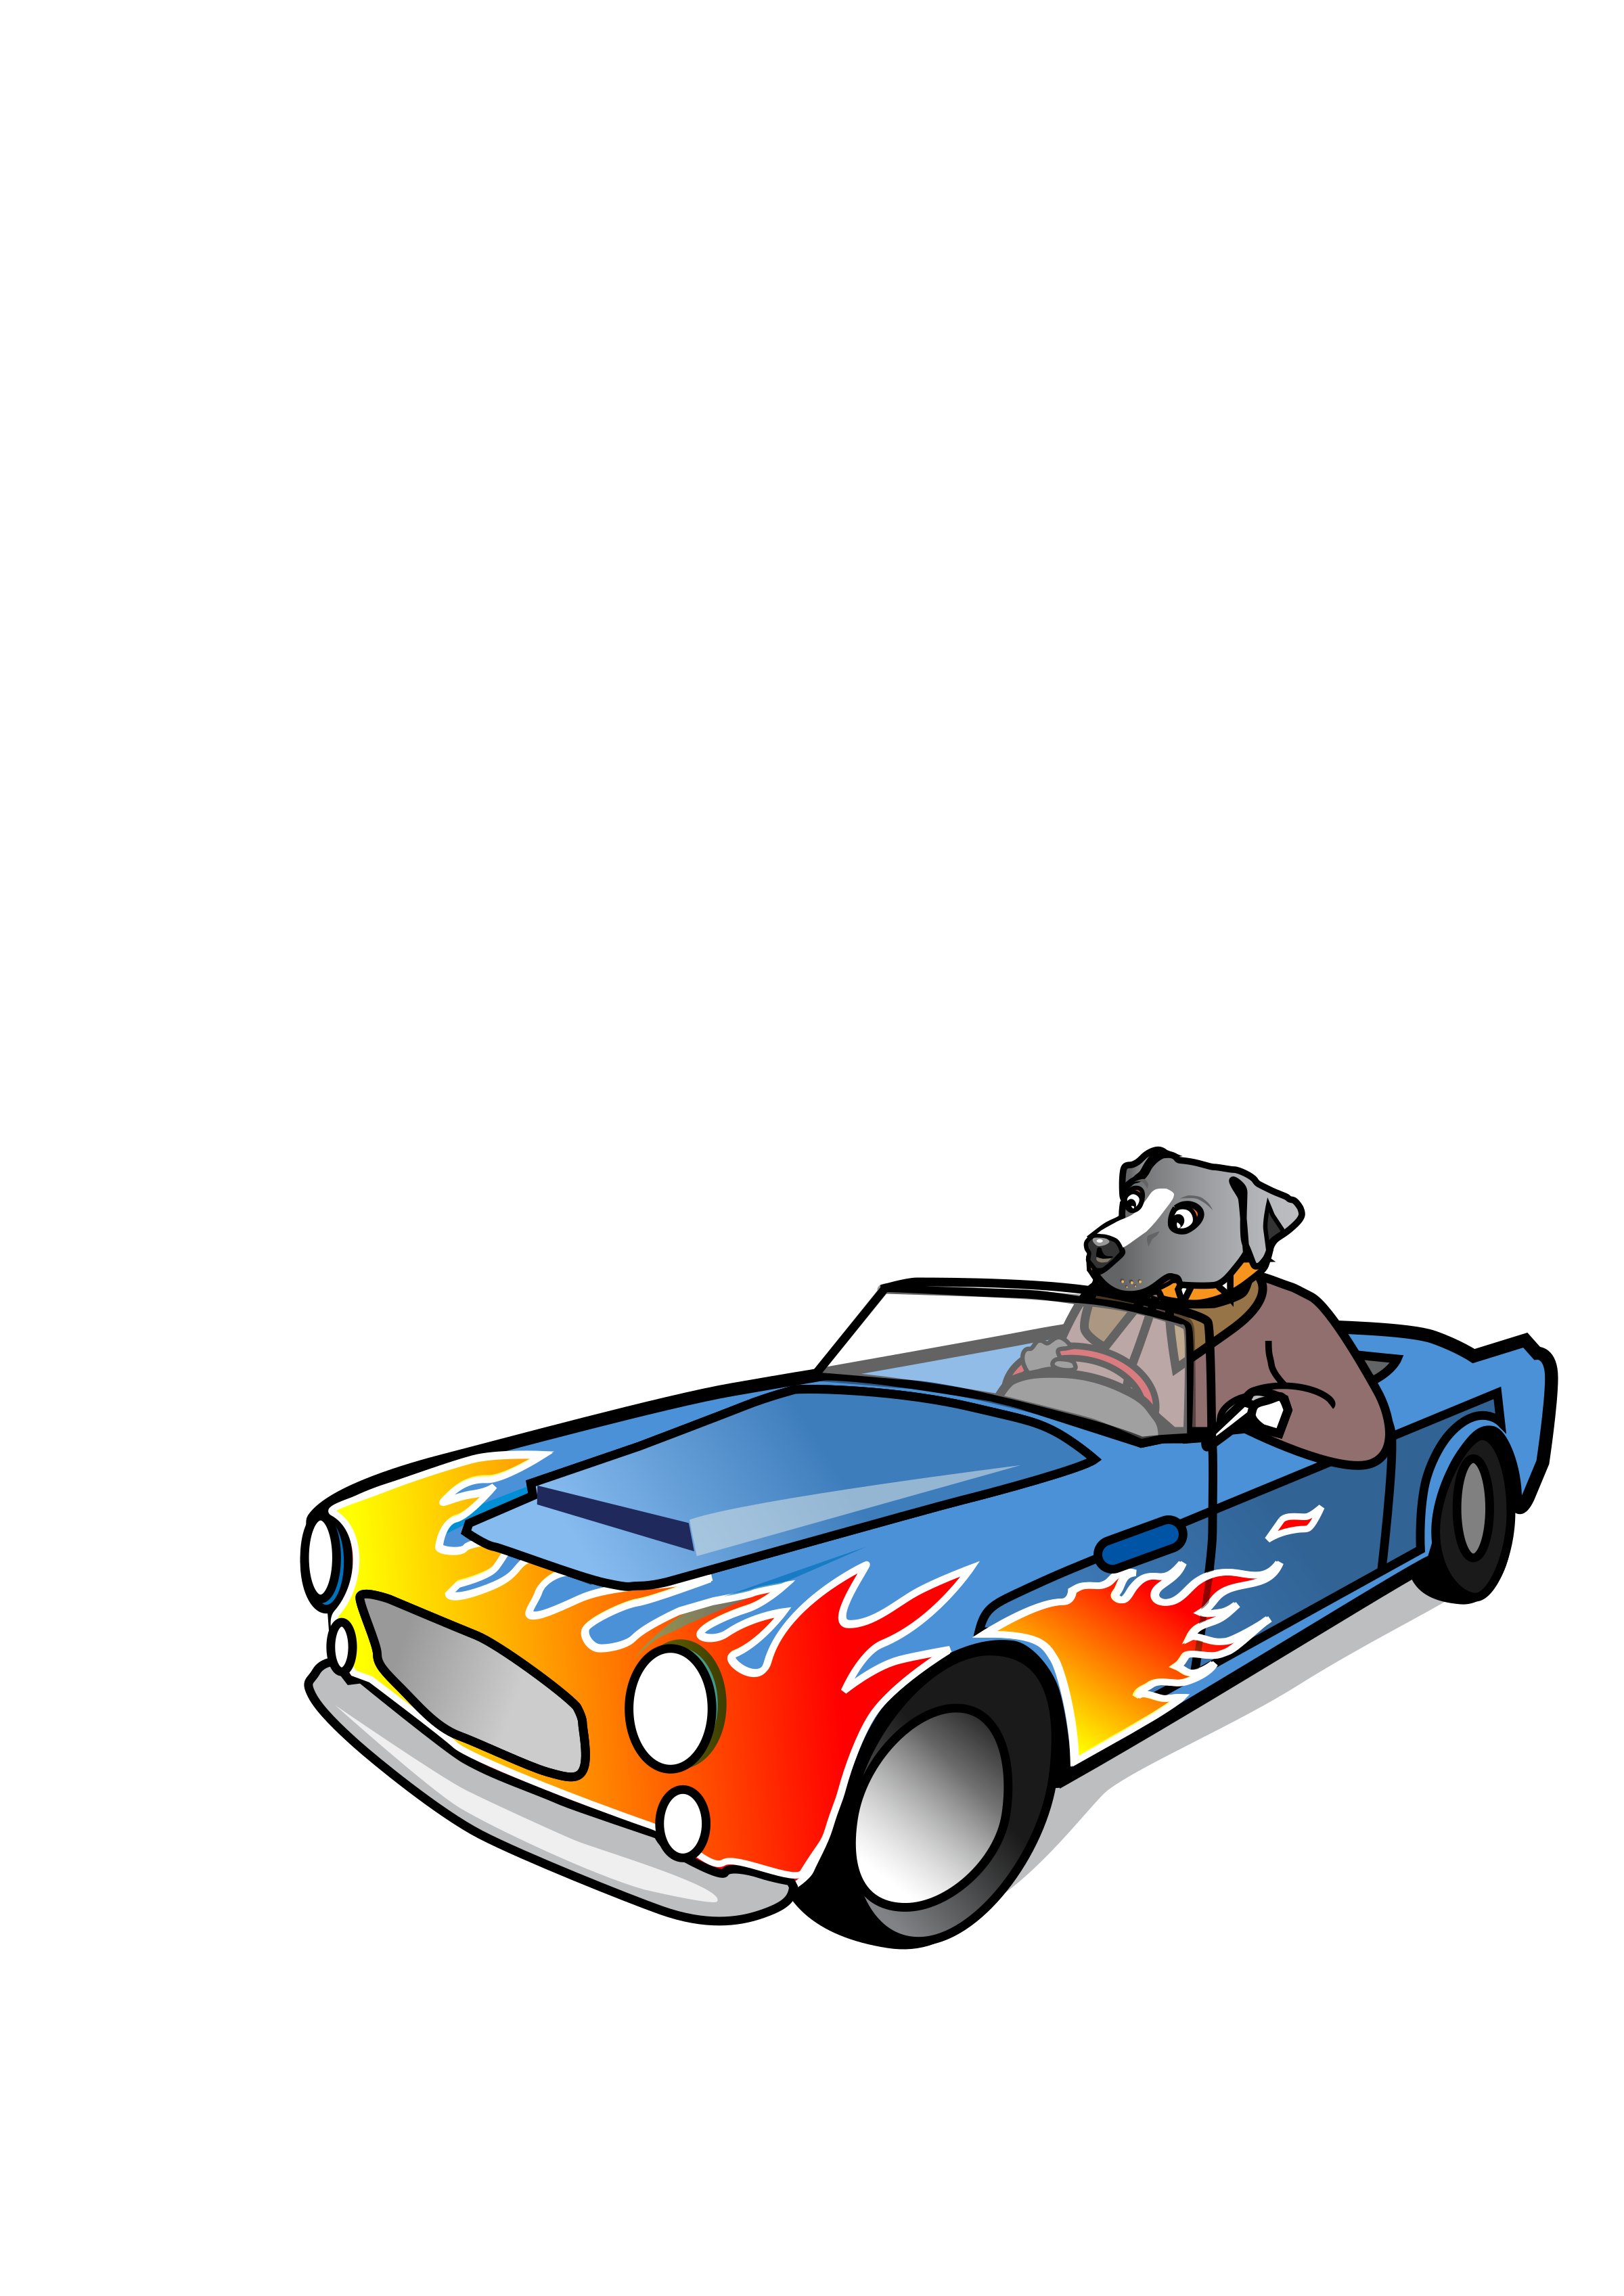 Dog in Sports Car by wildchief